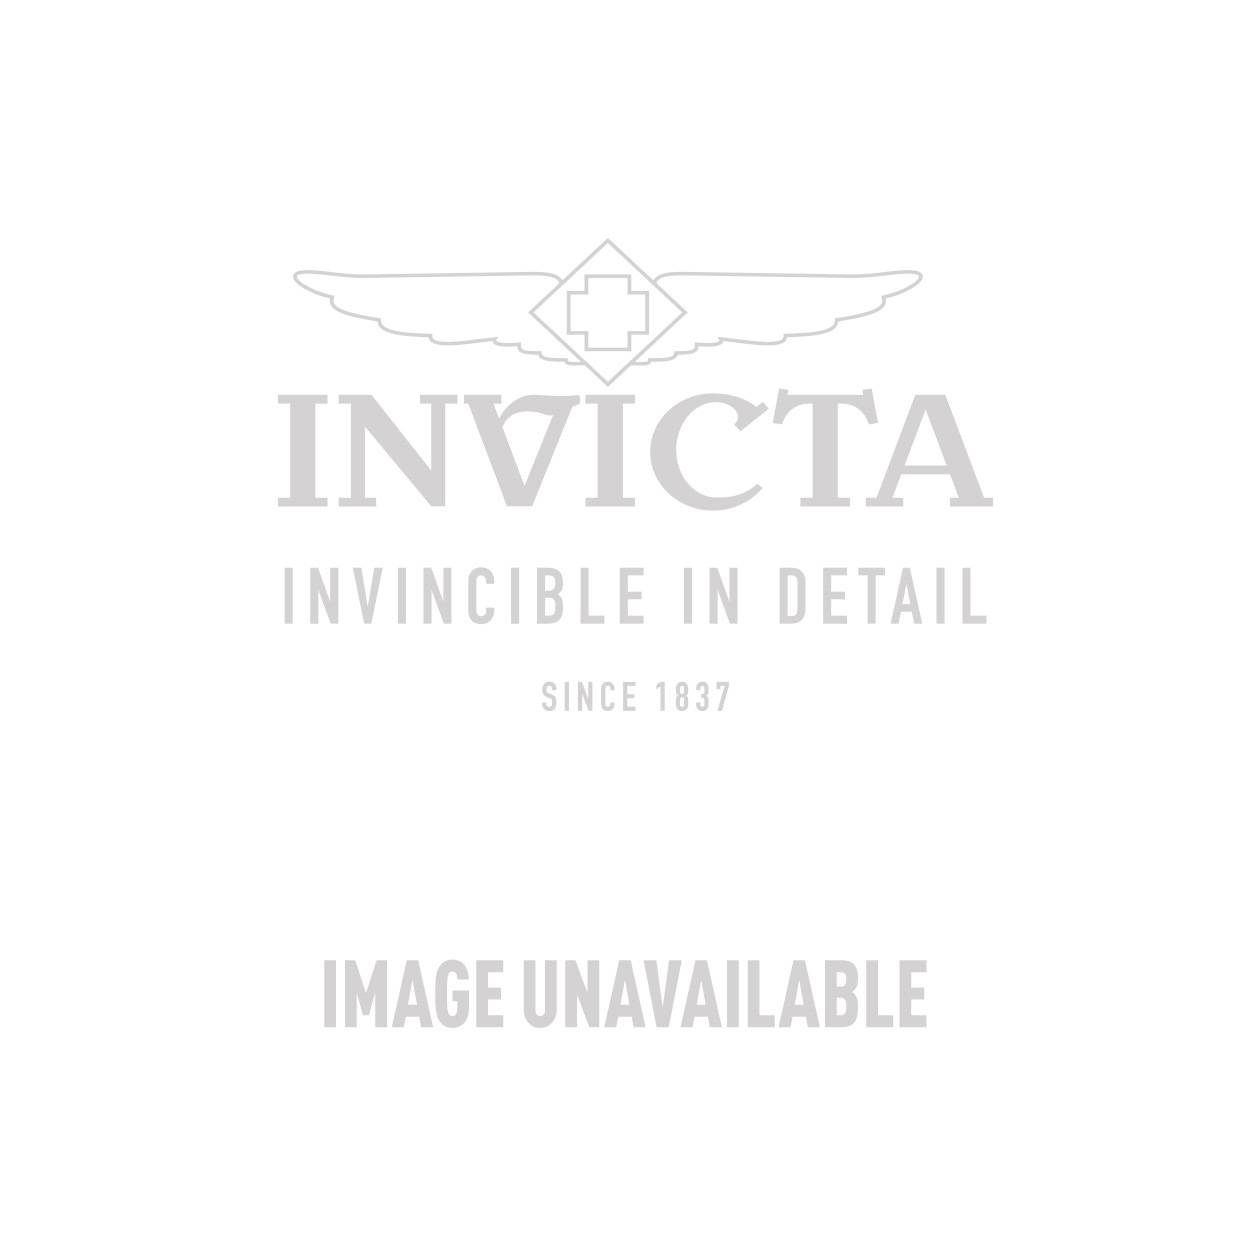 Invicta Specialty Swiss Movement Quartz Watch - Stainless Steel case Stainless Steel band - Model 1833